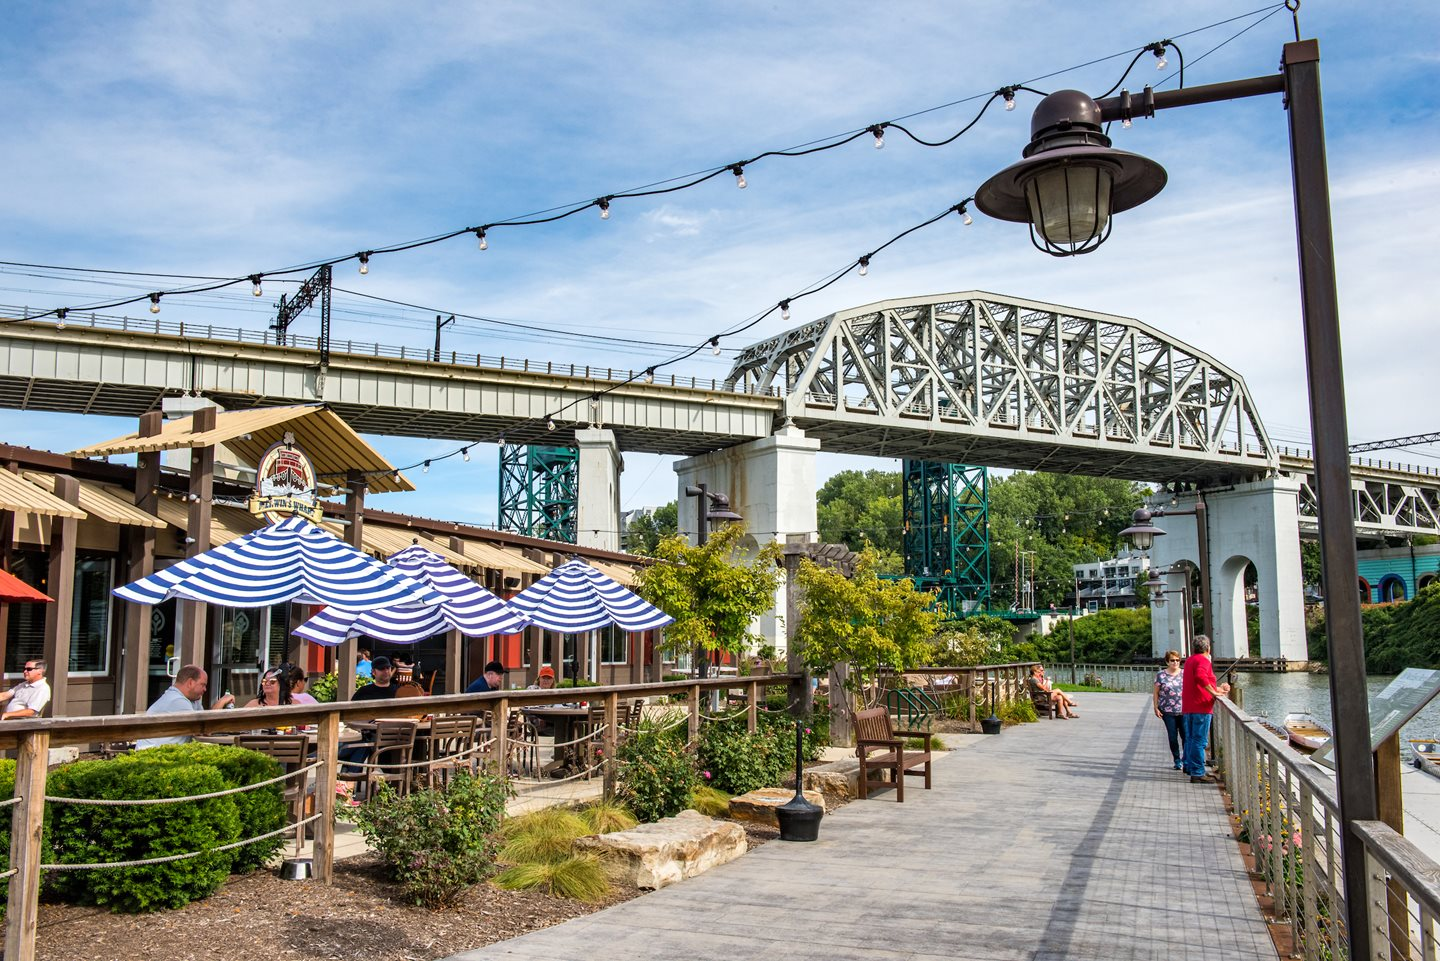 Cleveland Metroparks to Open Merwin's Wharf for Patio Dining